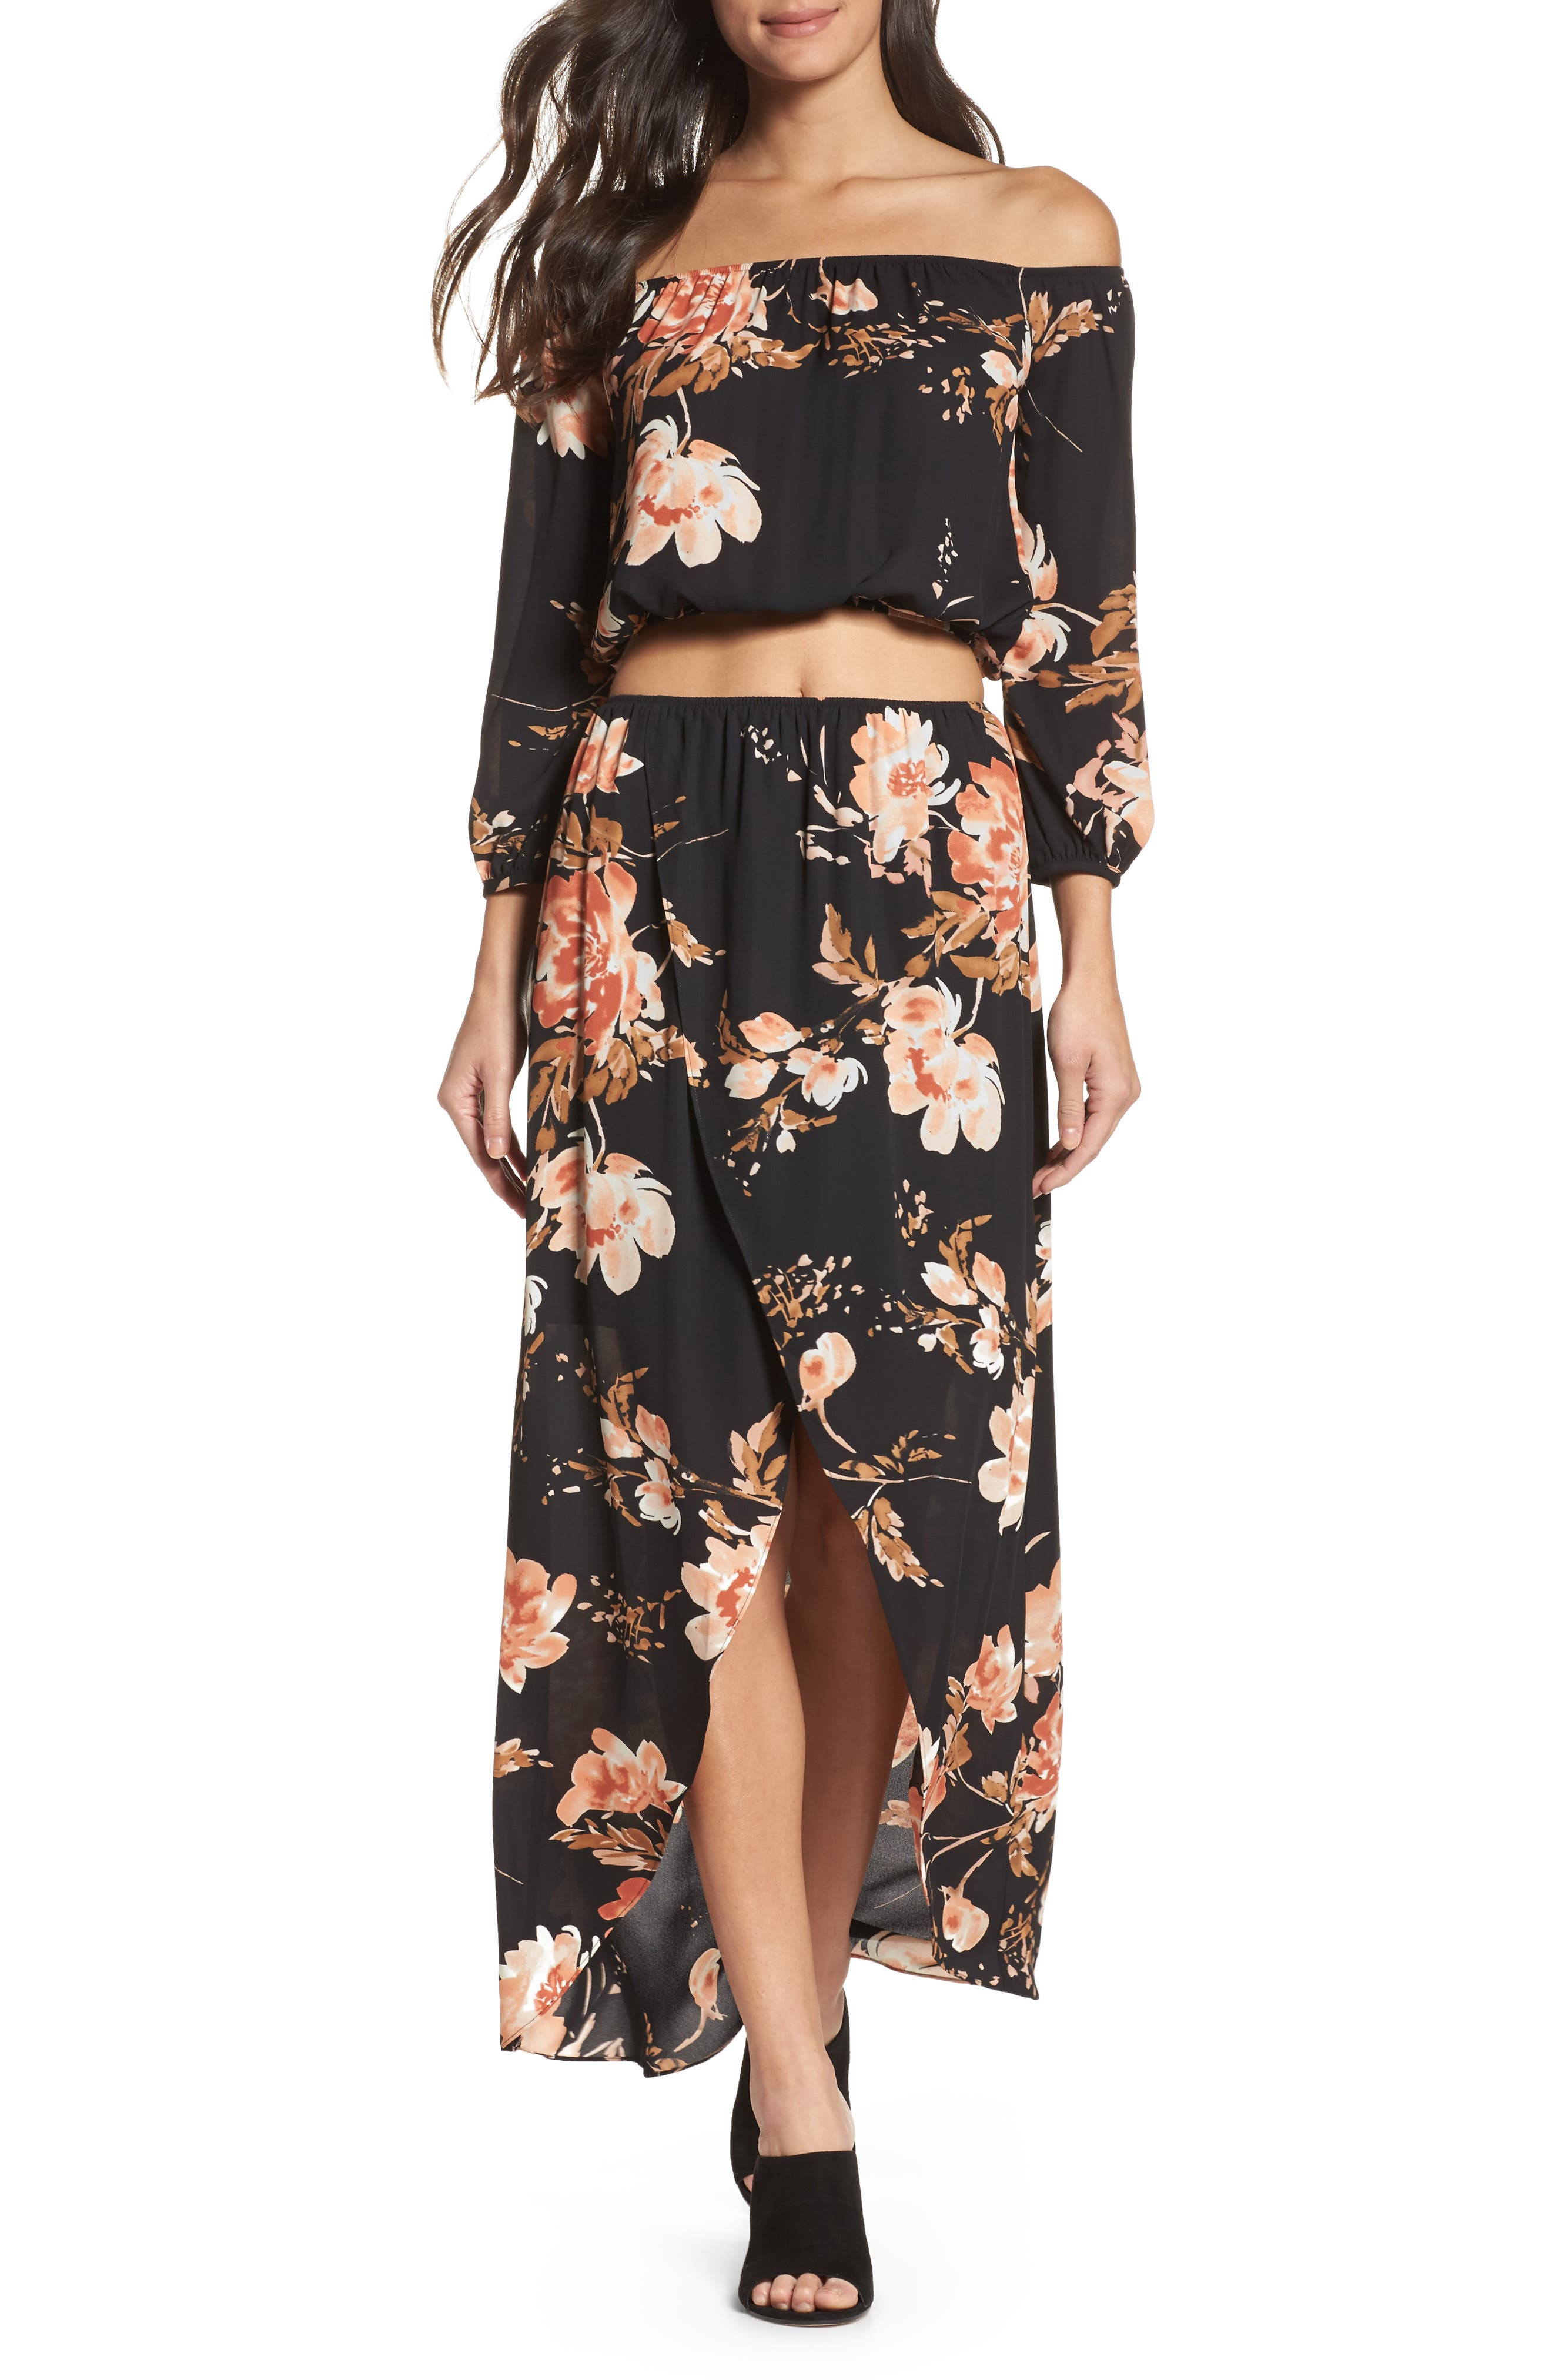 Floral Fever Two-Piece Dress,                         Main,                         color, Blushing Rust Roses